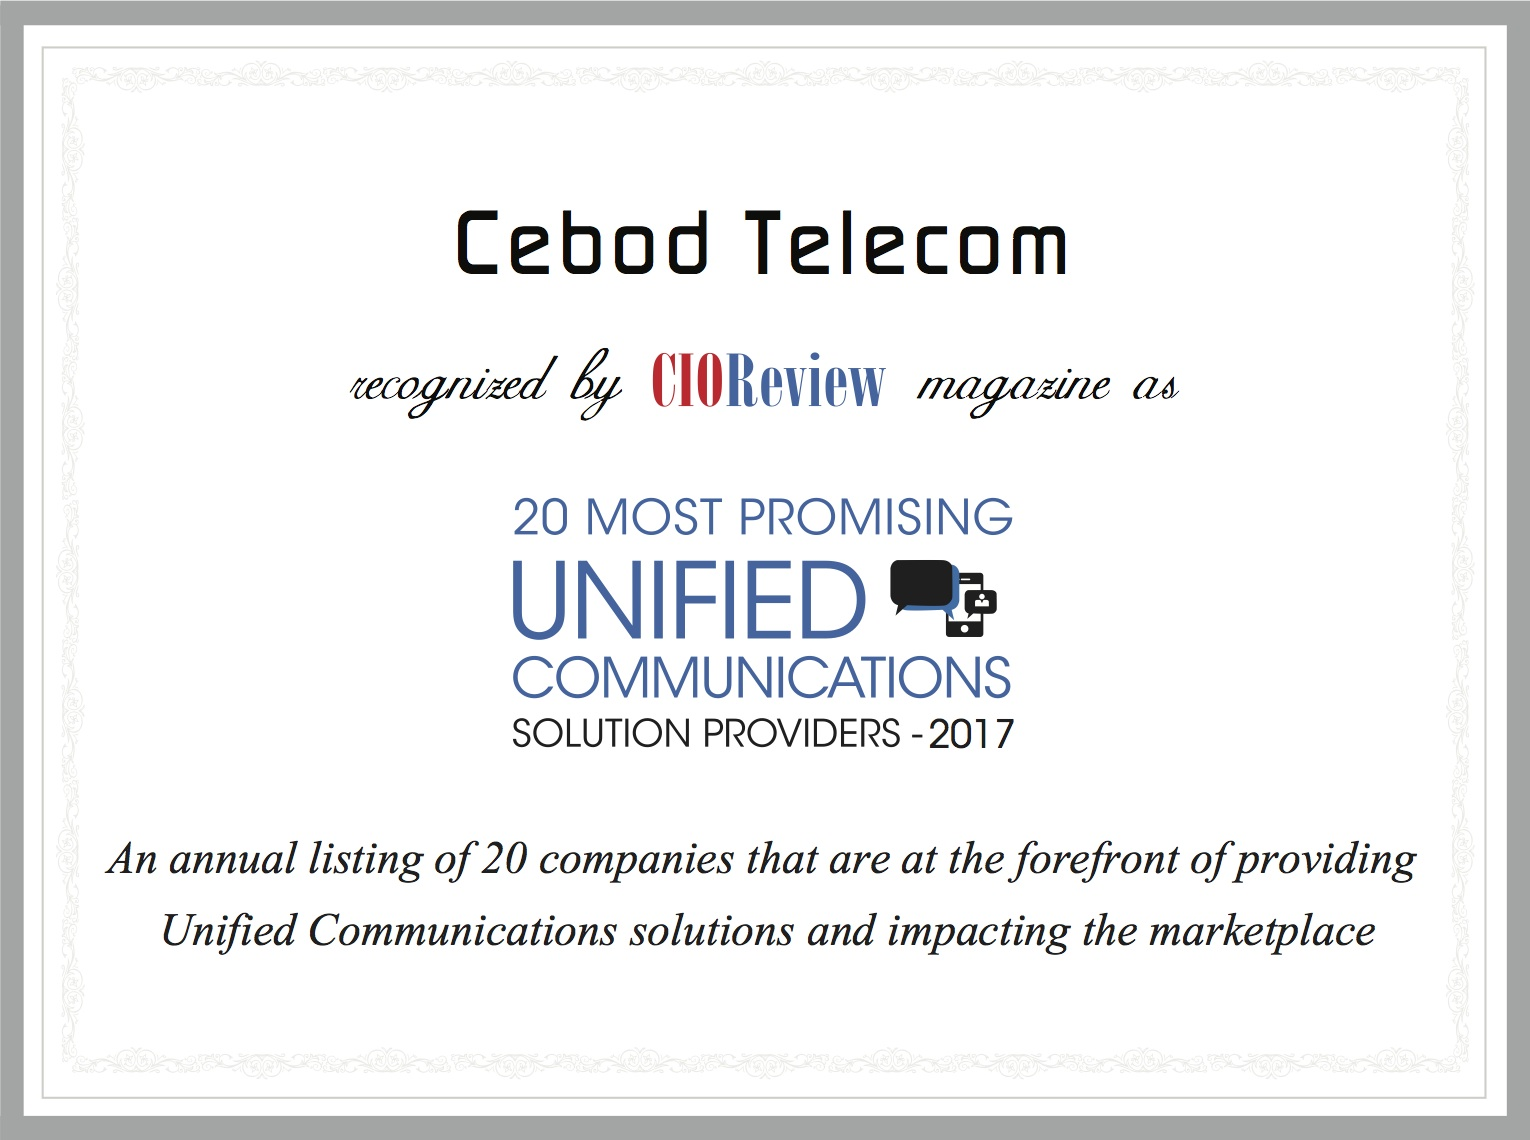 20 most promising unified communication provider